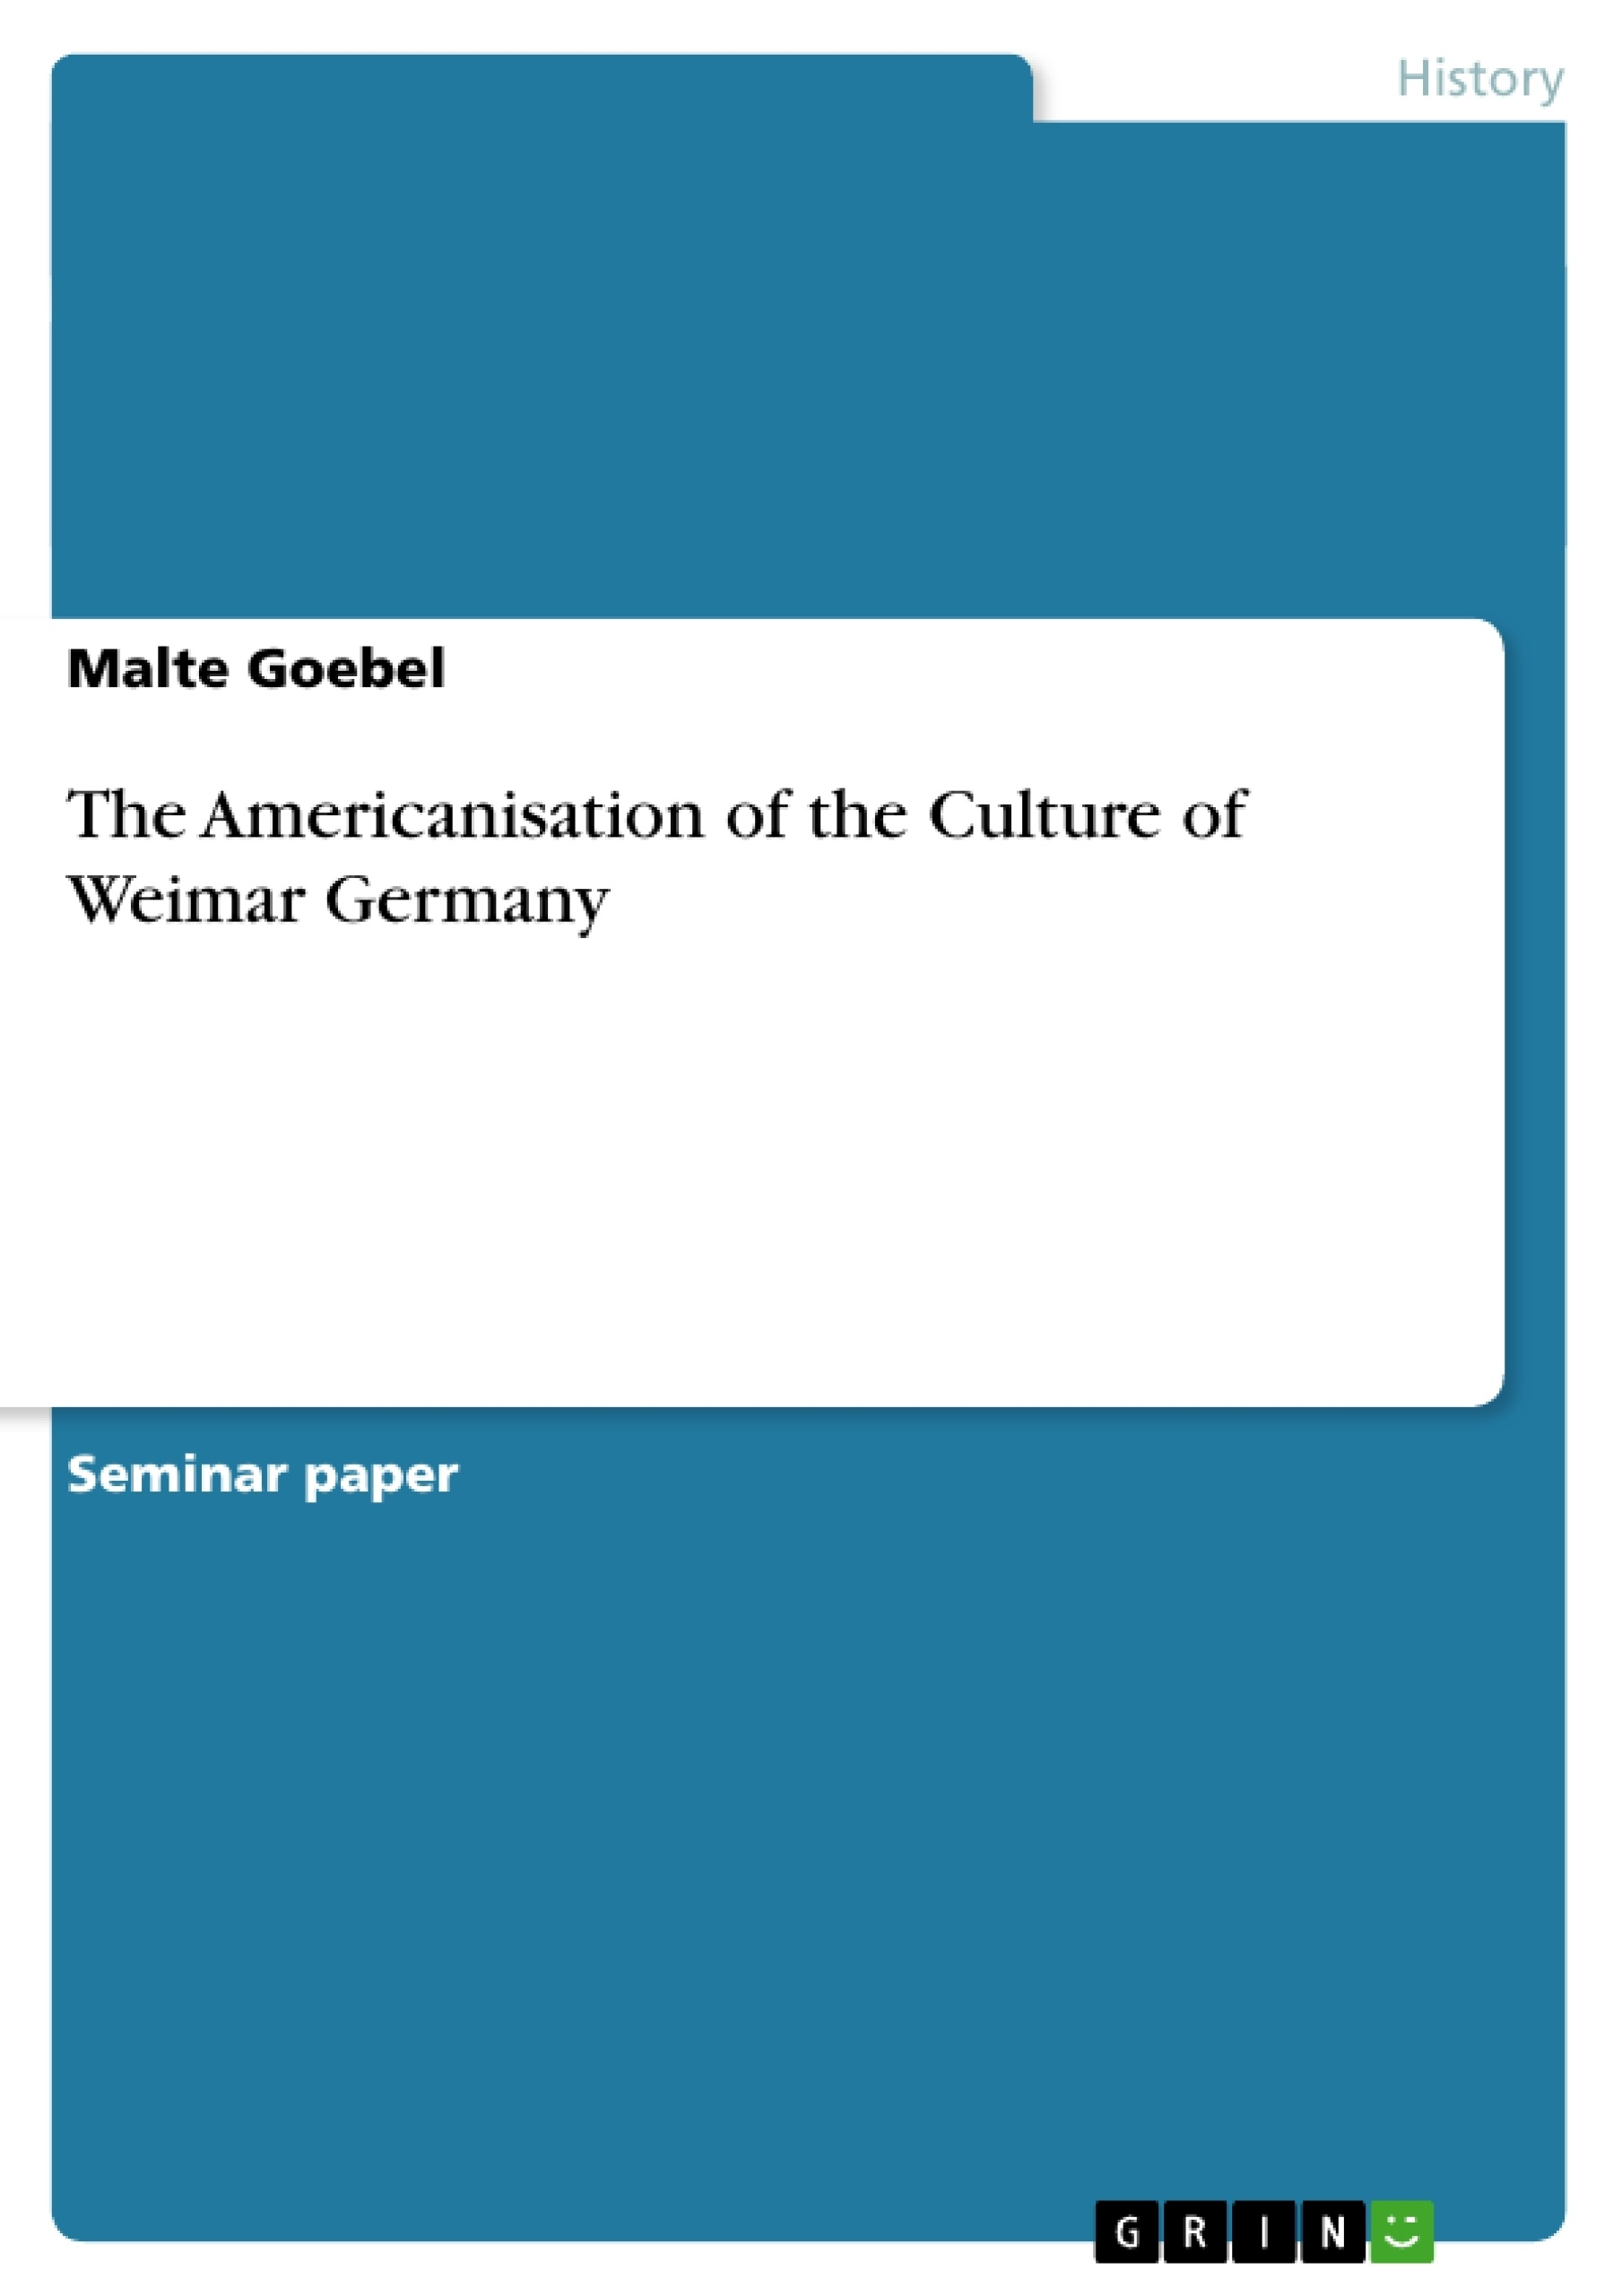 Title: The Americanisation of the Culture of Weimar Germany